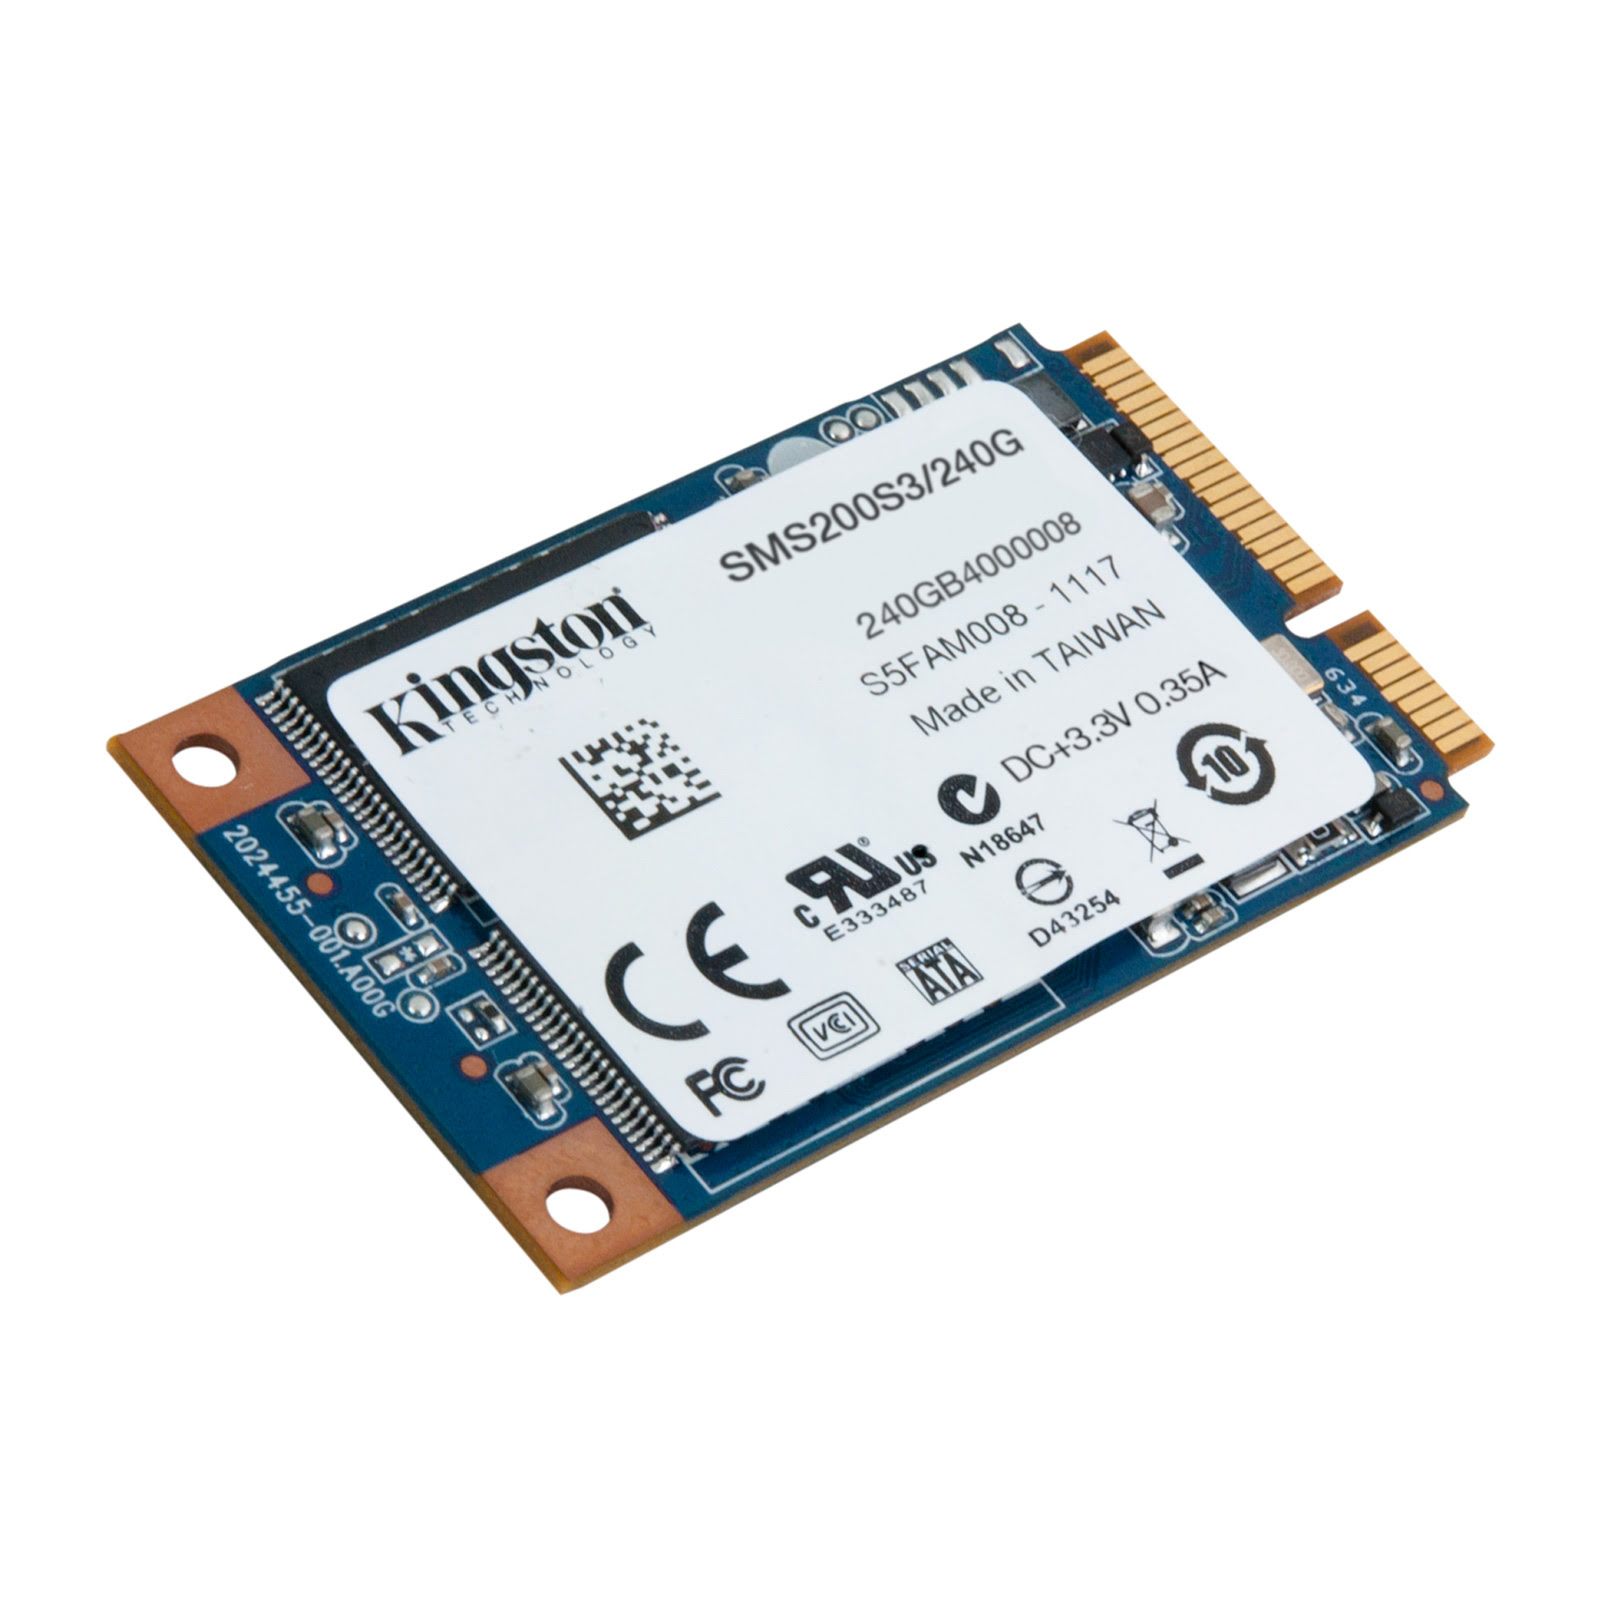 Kingston SMS200S3/240G 240-275Go - Disque SSD Kingston - 1